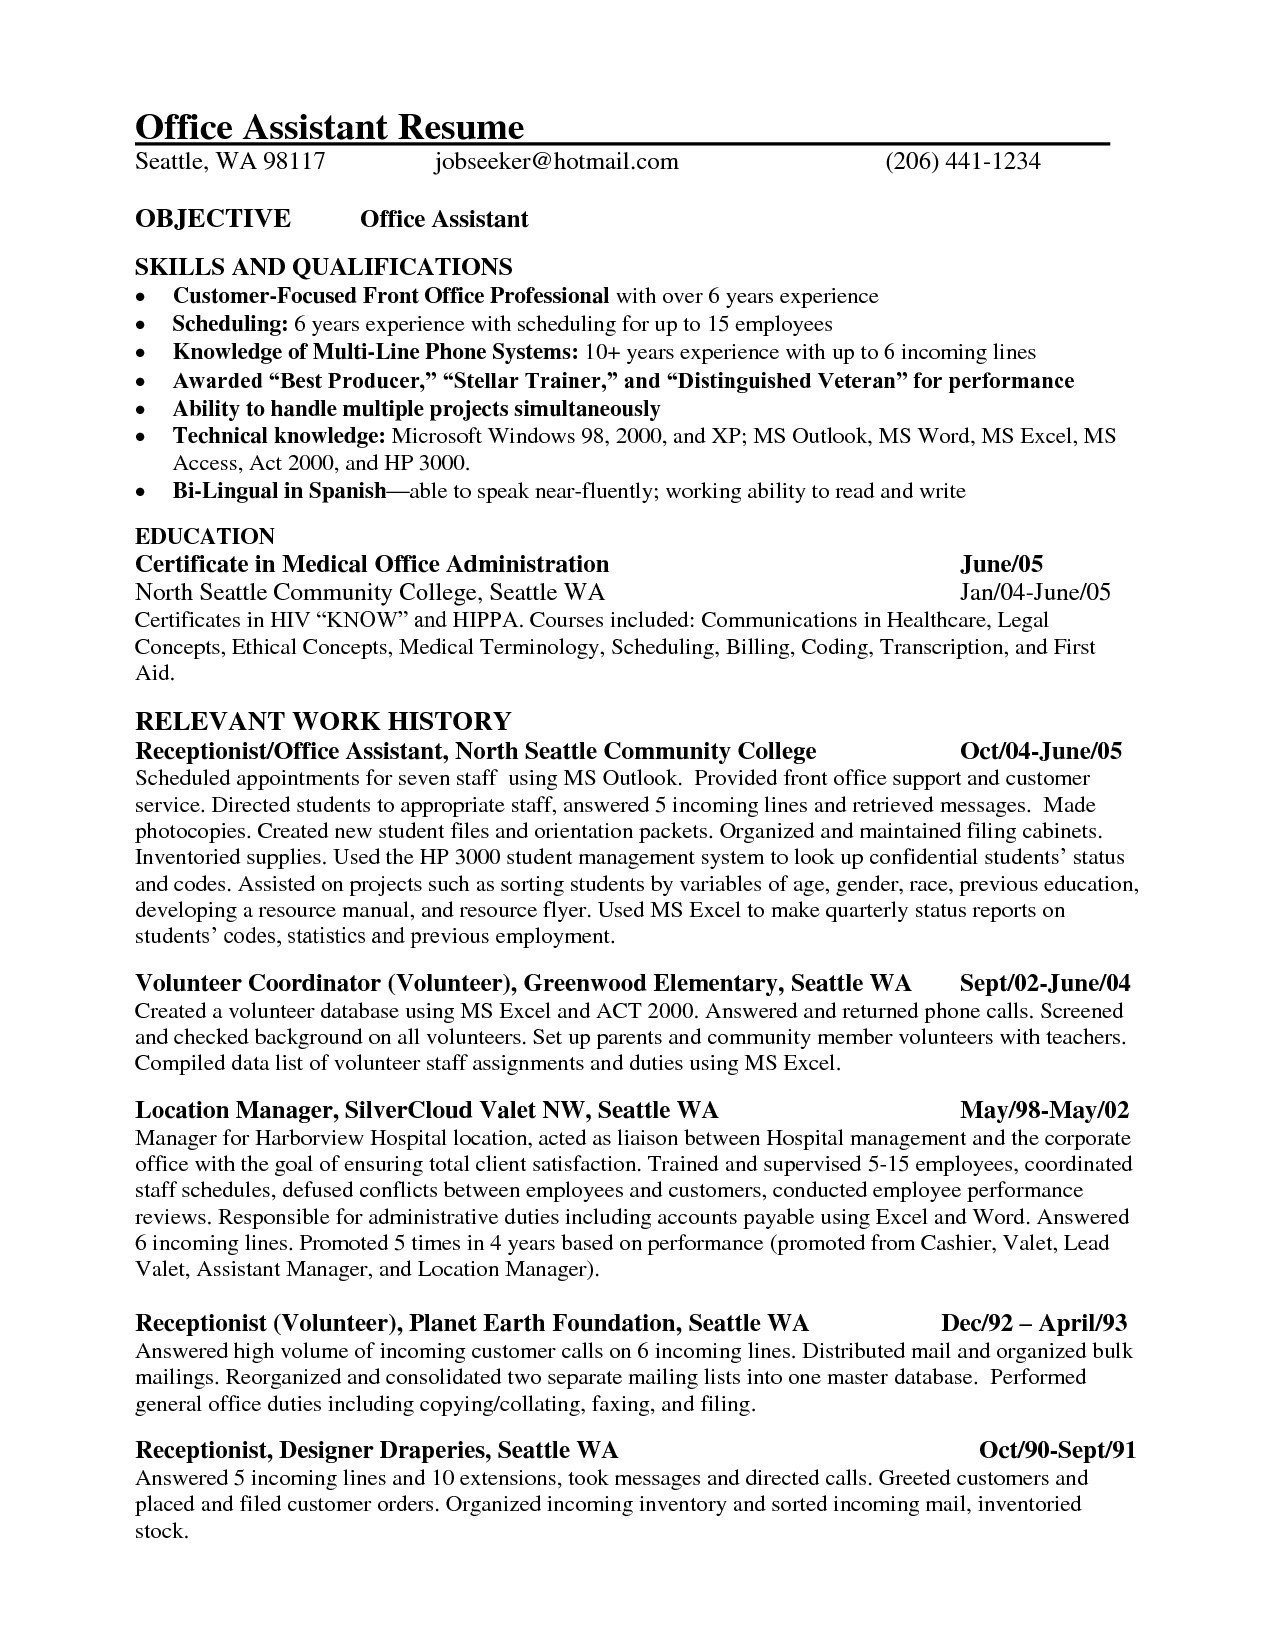 Resume Words for Manage - 21 Resume Words for Manage